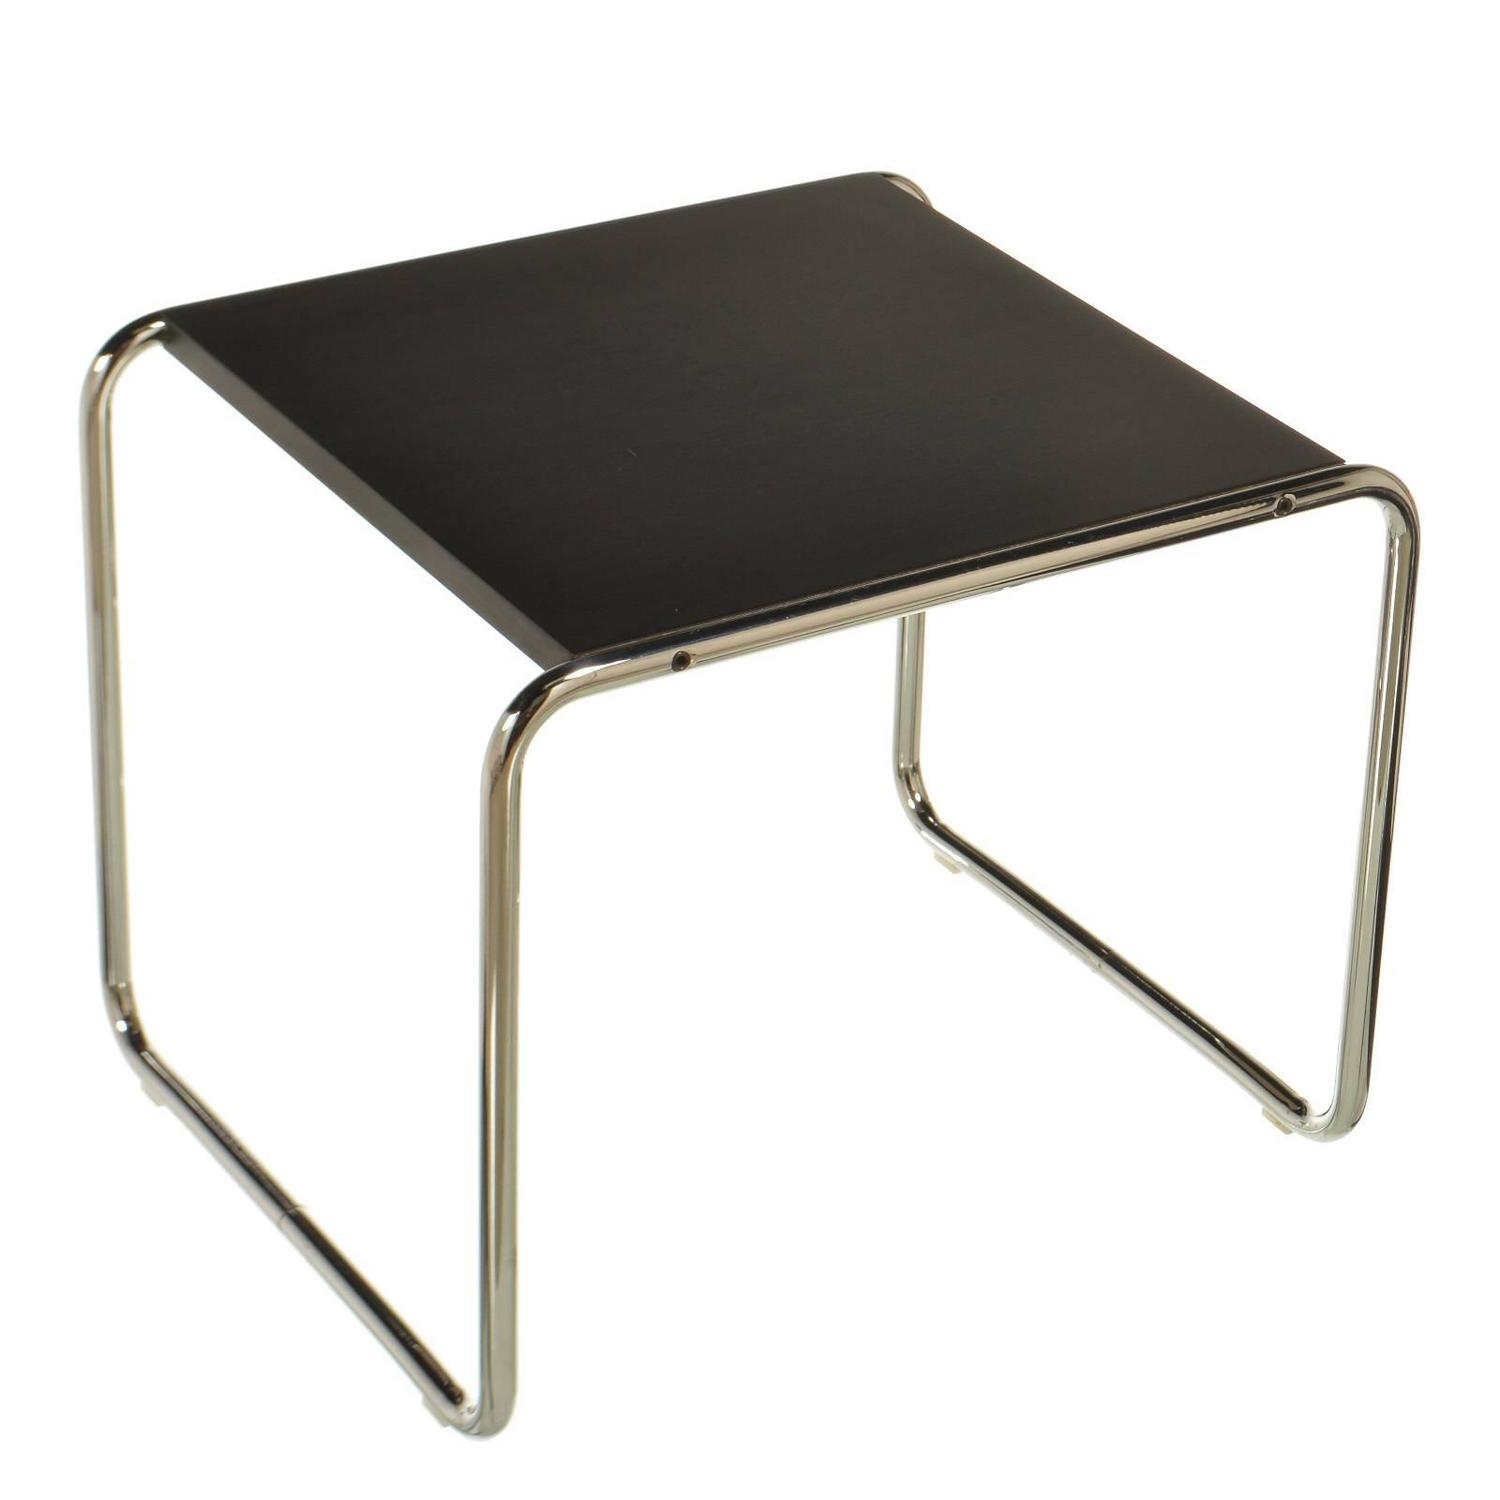 classic bauhaus laccio occasional table by marcel breuer at 1stdibs. Black Bedroom Furniture Sets. Home Design Ideas